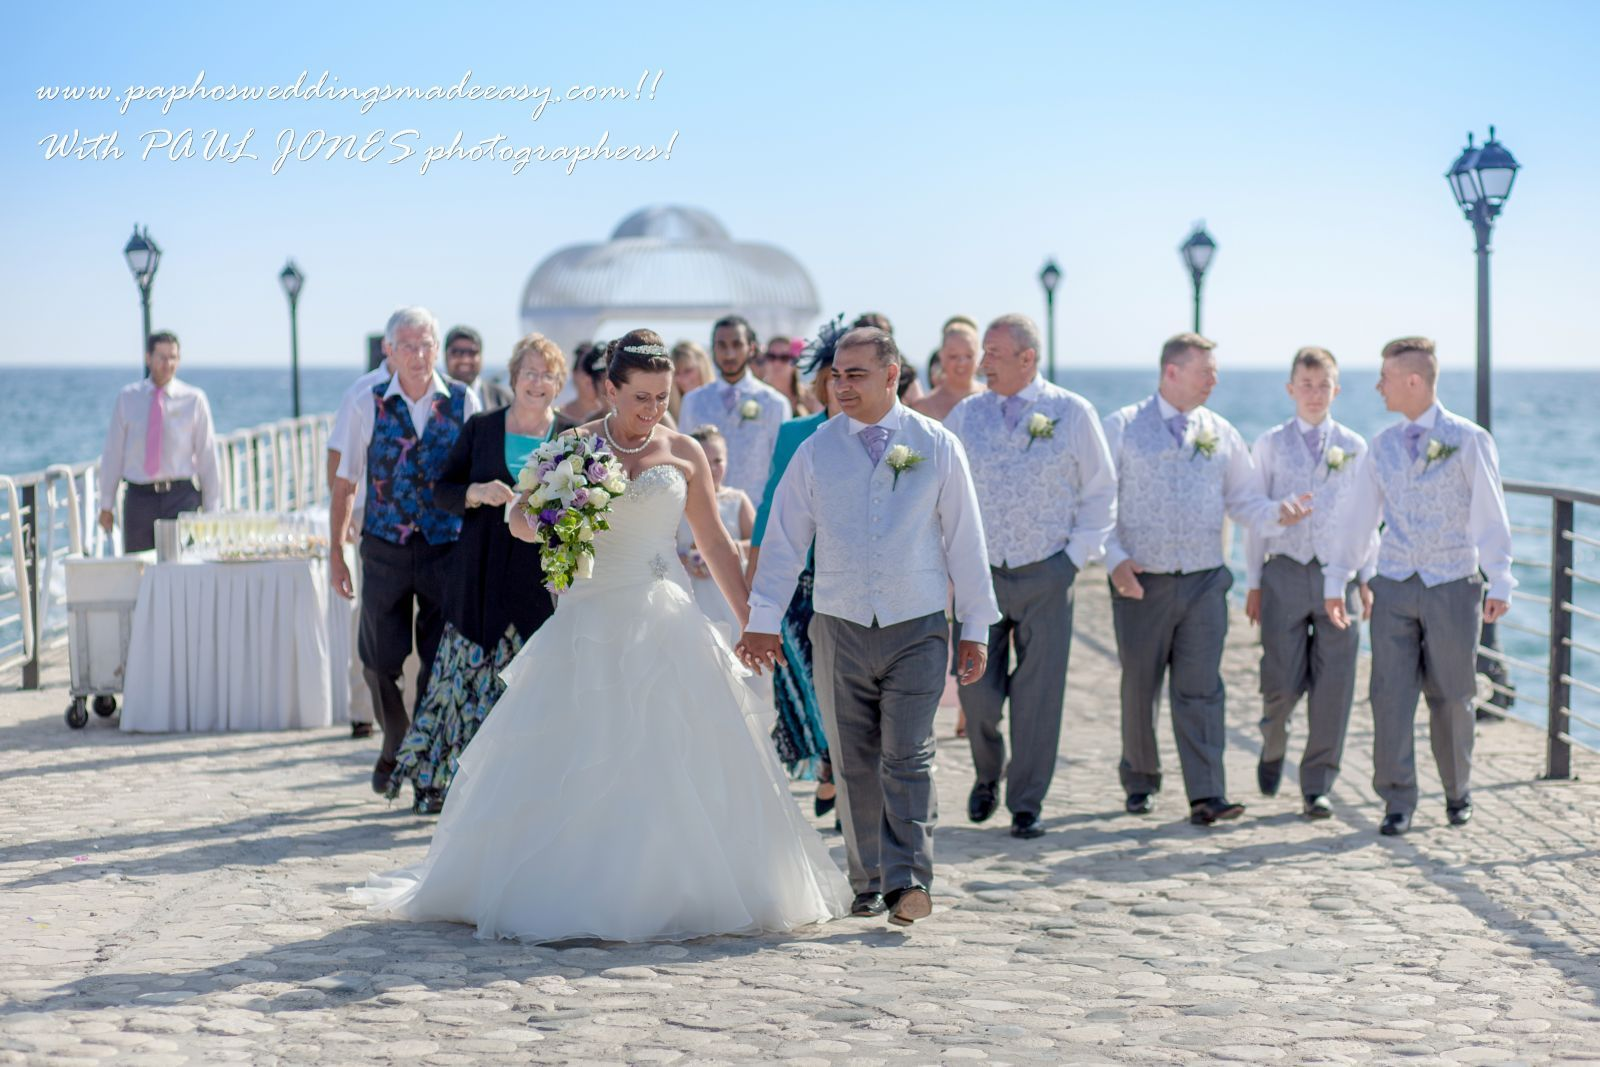 Elias Beach Hotel Weddings Variety Of Wedding Packages In Paphos Including Photography And Videos At This Venue Cyprus